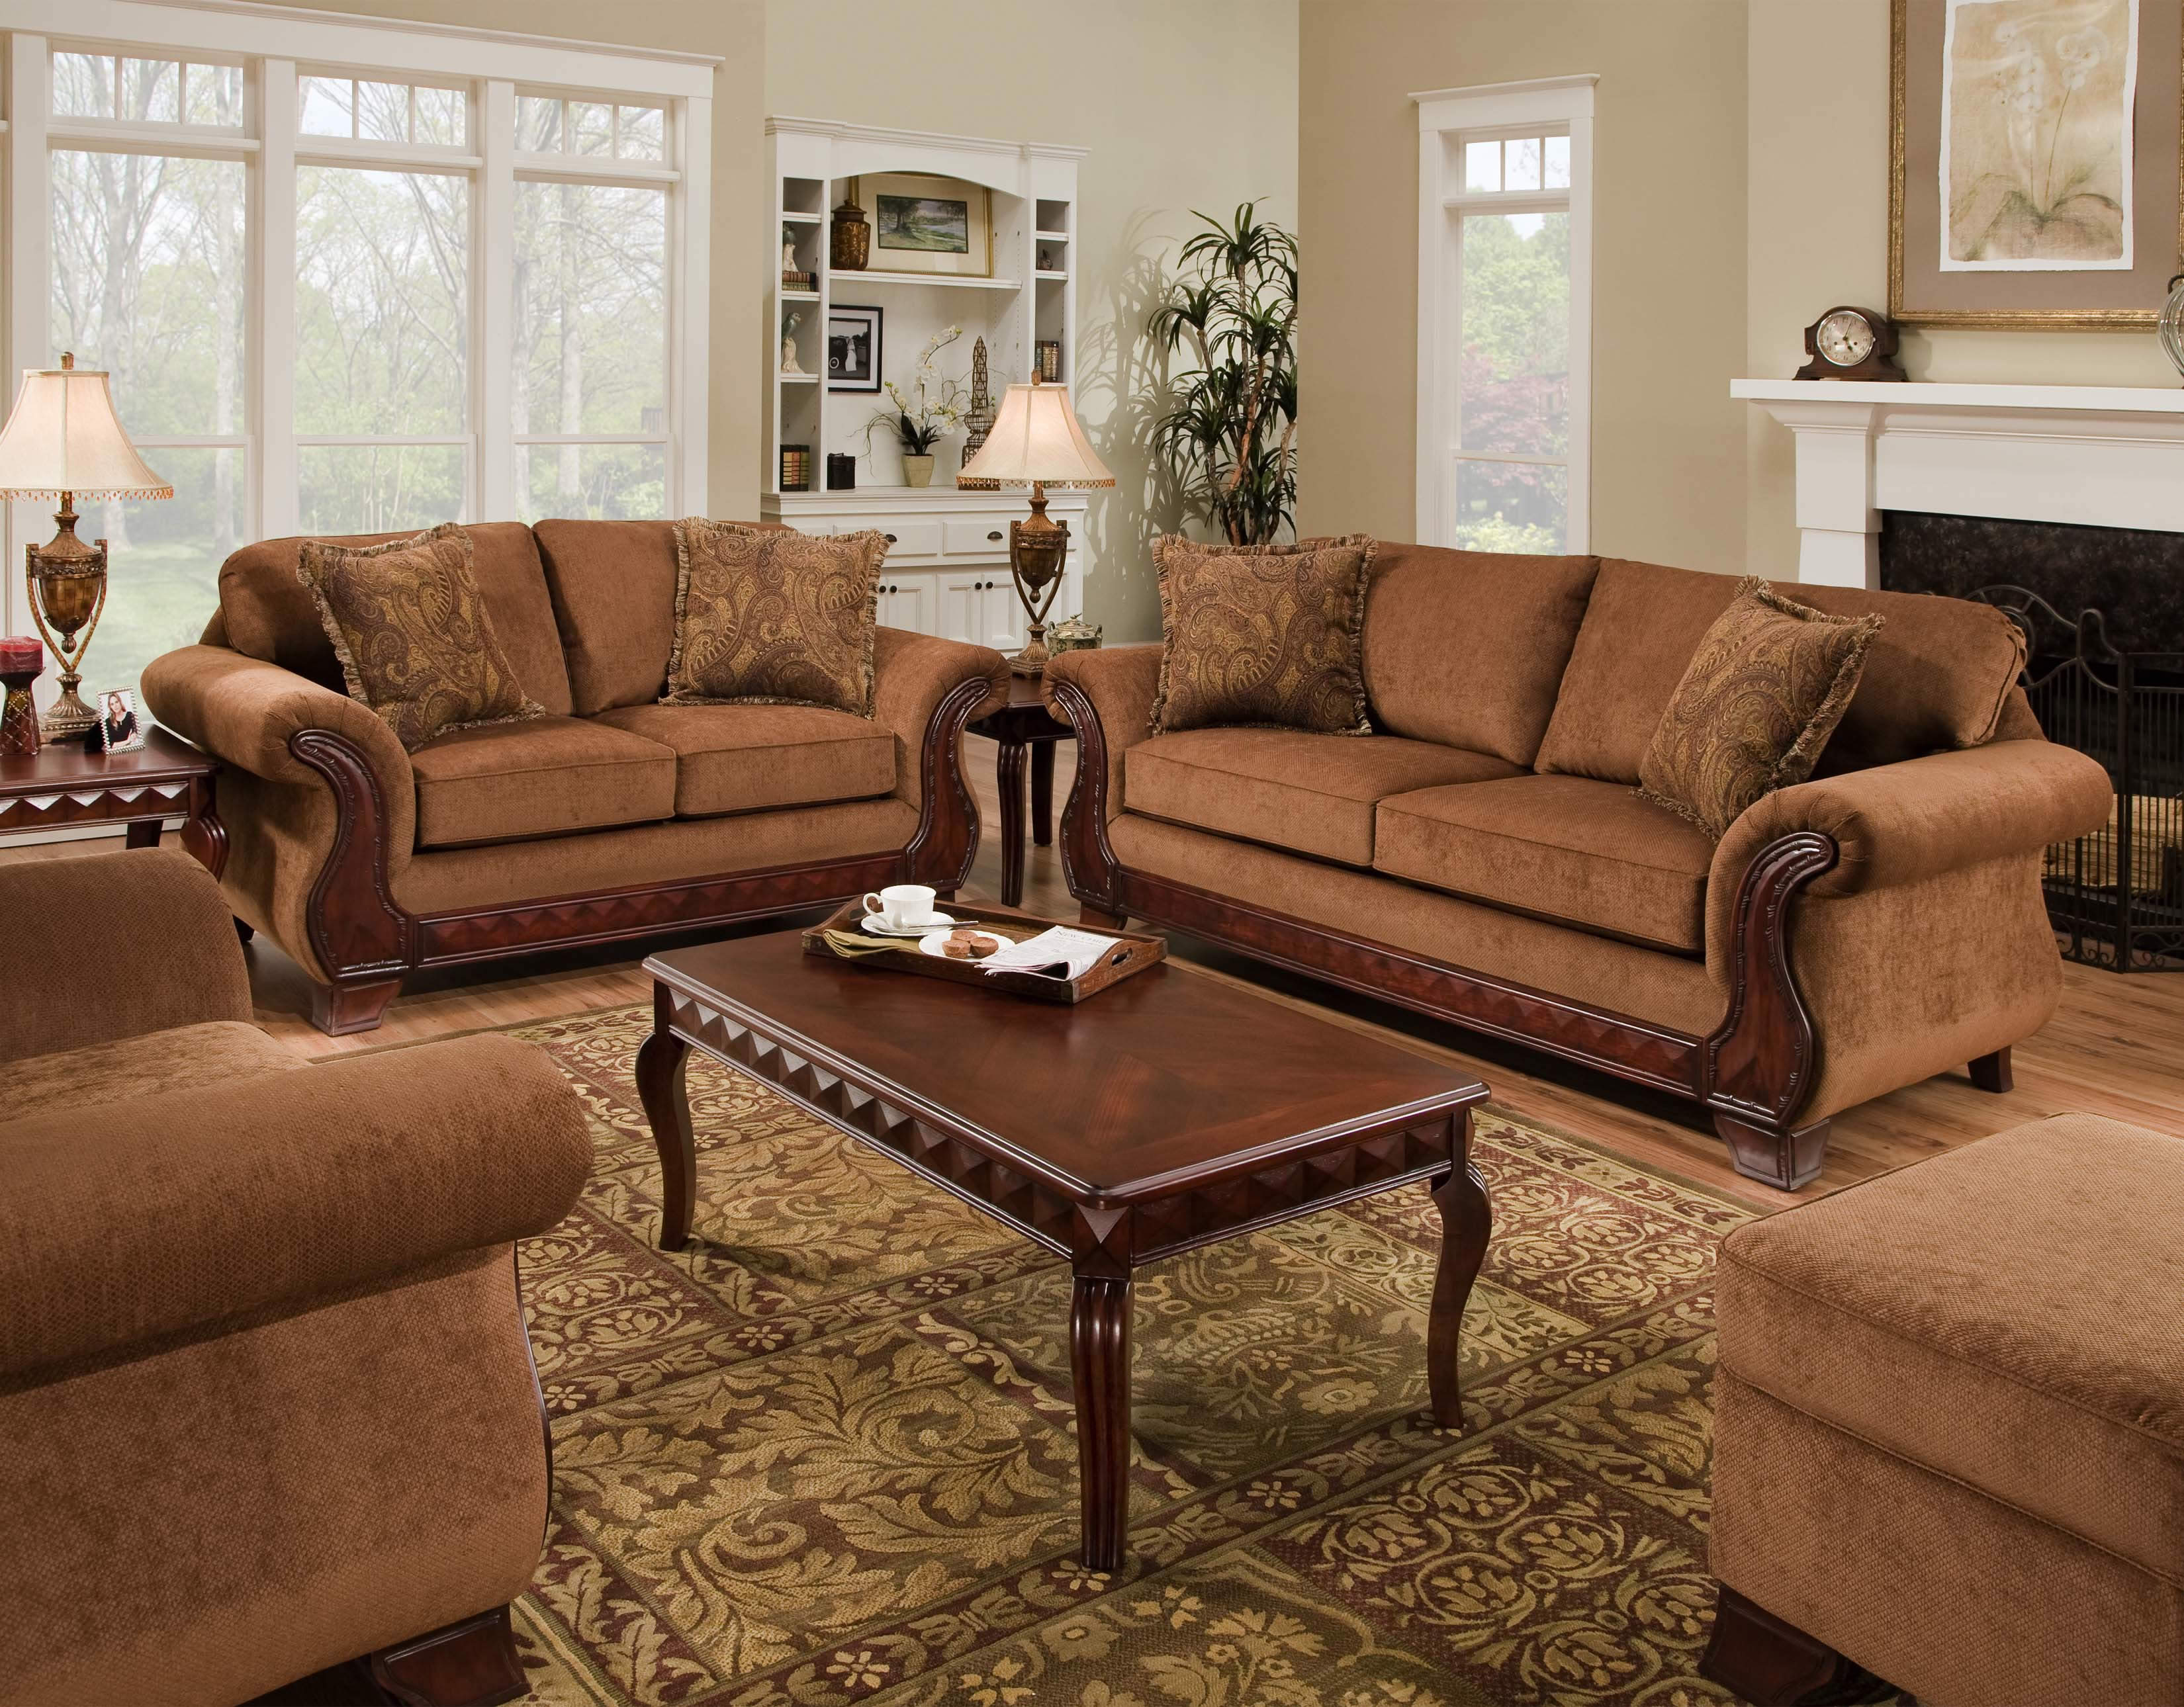 Sofas Couches Loveseats Oversized Chairs Fabric